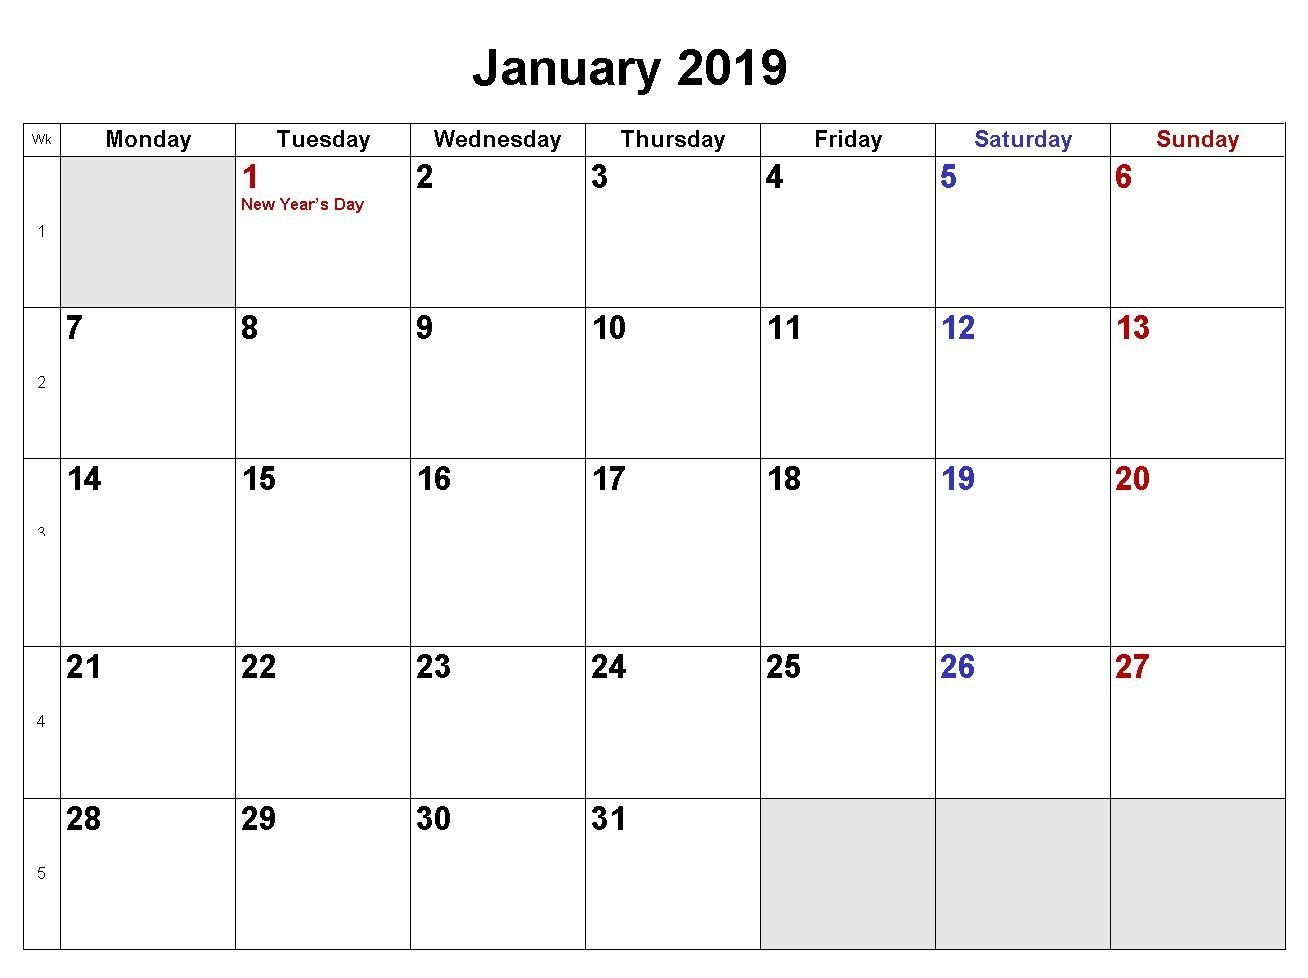 2019 Calendar Doc January 2019 Calendar Word Doc | Template of January 2019 Blank